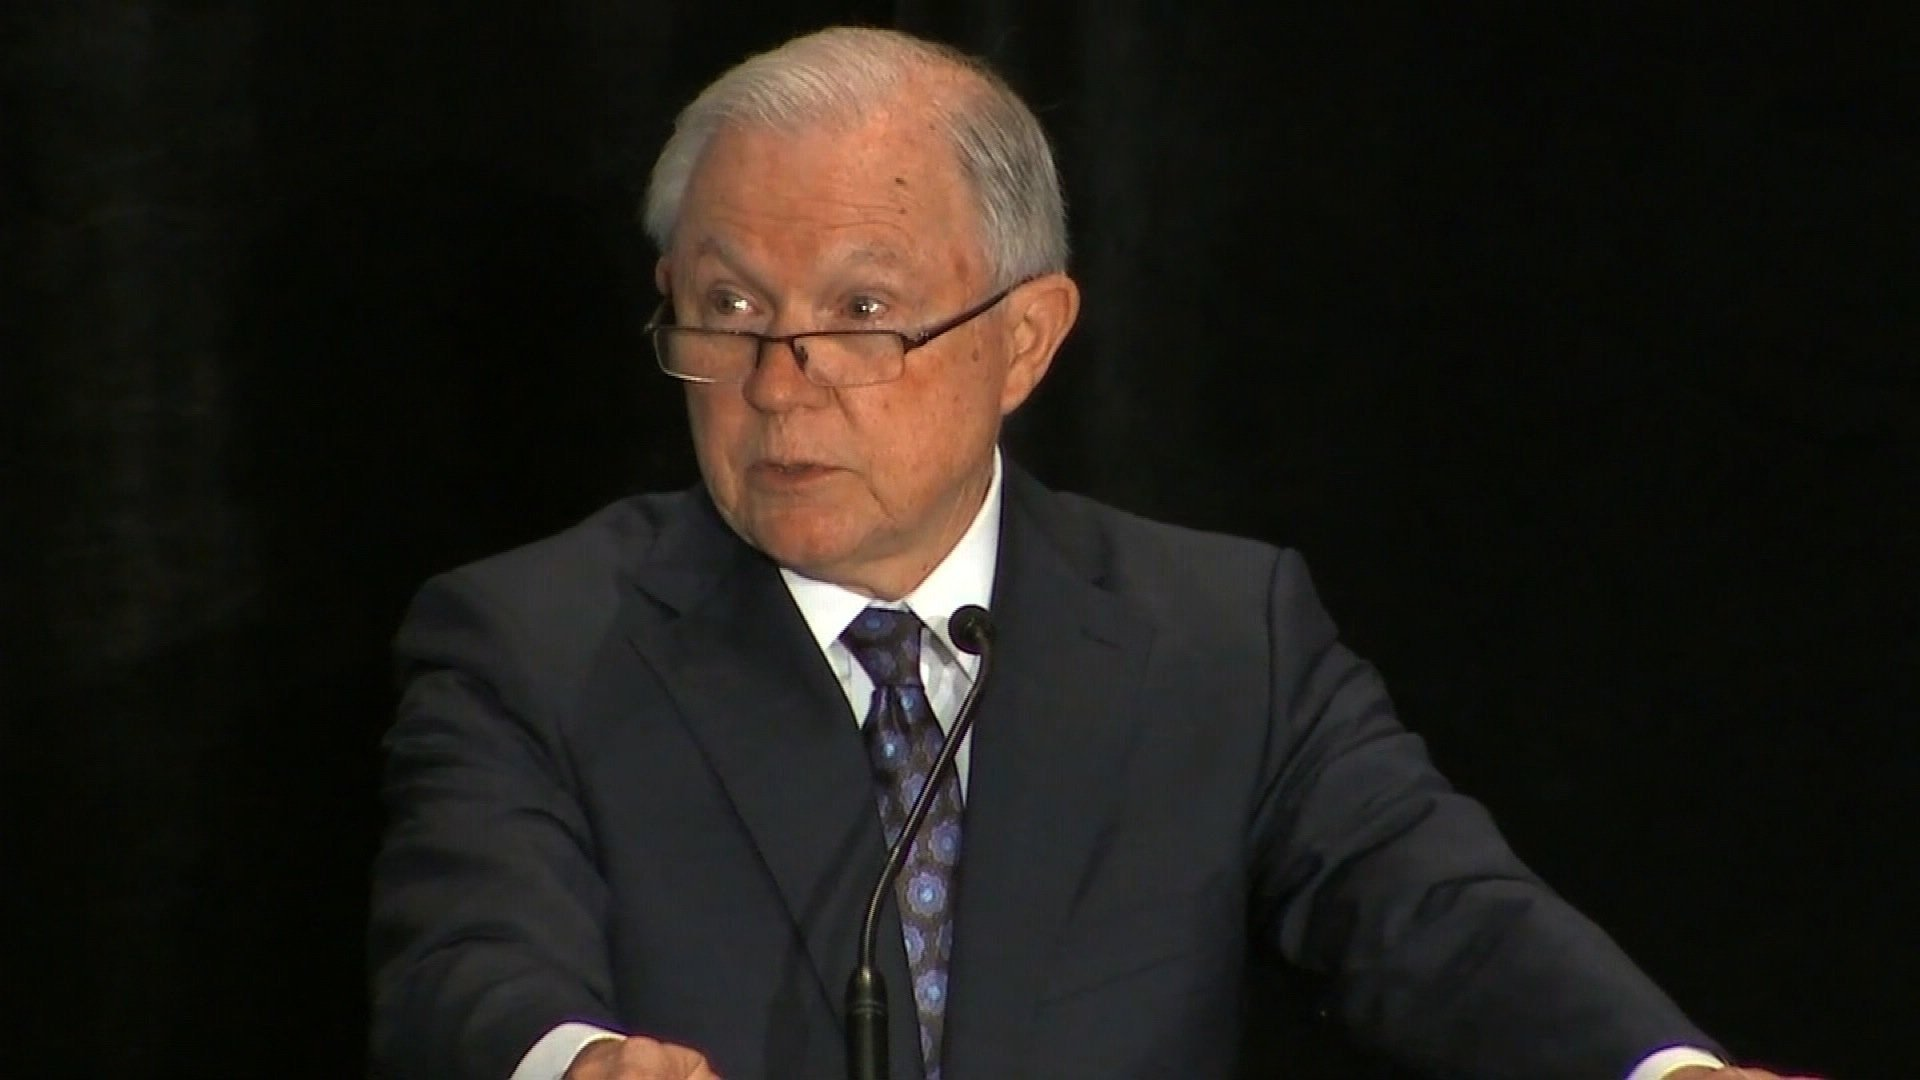 When Attorney General Jeff Sessions ruled that domestic violence and gang victims are not likely to qualify for asylum in the US, he undercut potentially tens of thousands of claims each year for people seeking protection.